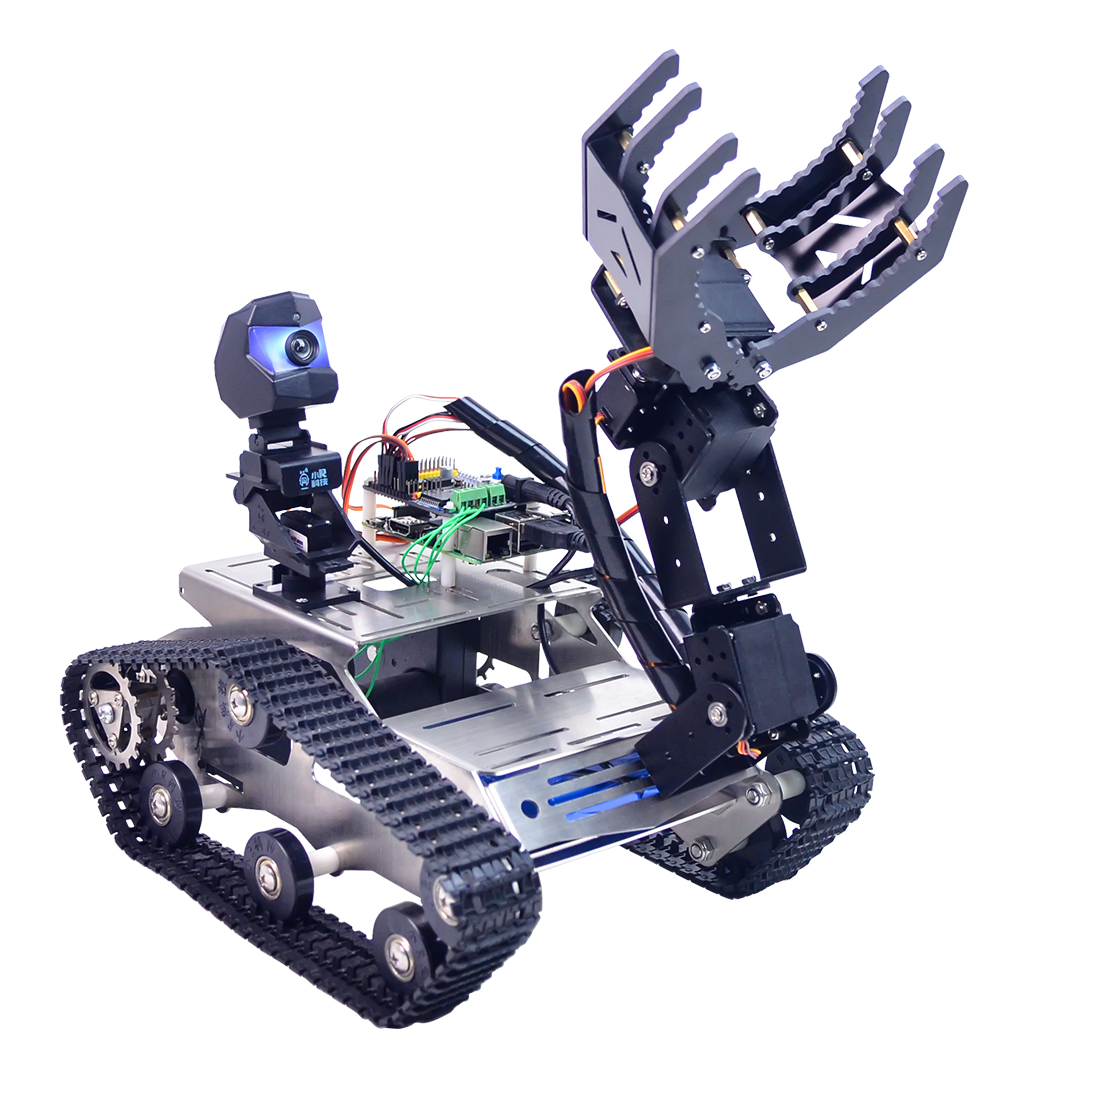 Large Claw Programmable TH WiFi Bluetooth FPV Tank Robot Car Kit With Arm For Arduino MEGA - Line Patrol Obstacle Avoidance